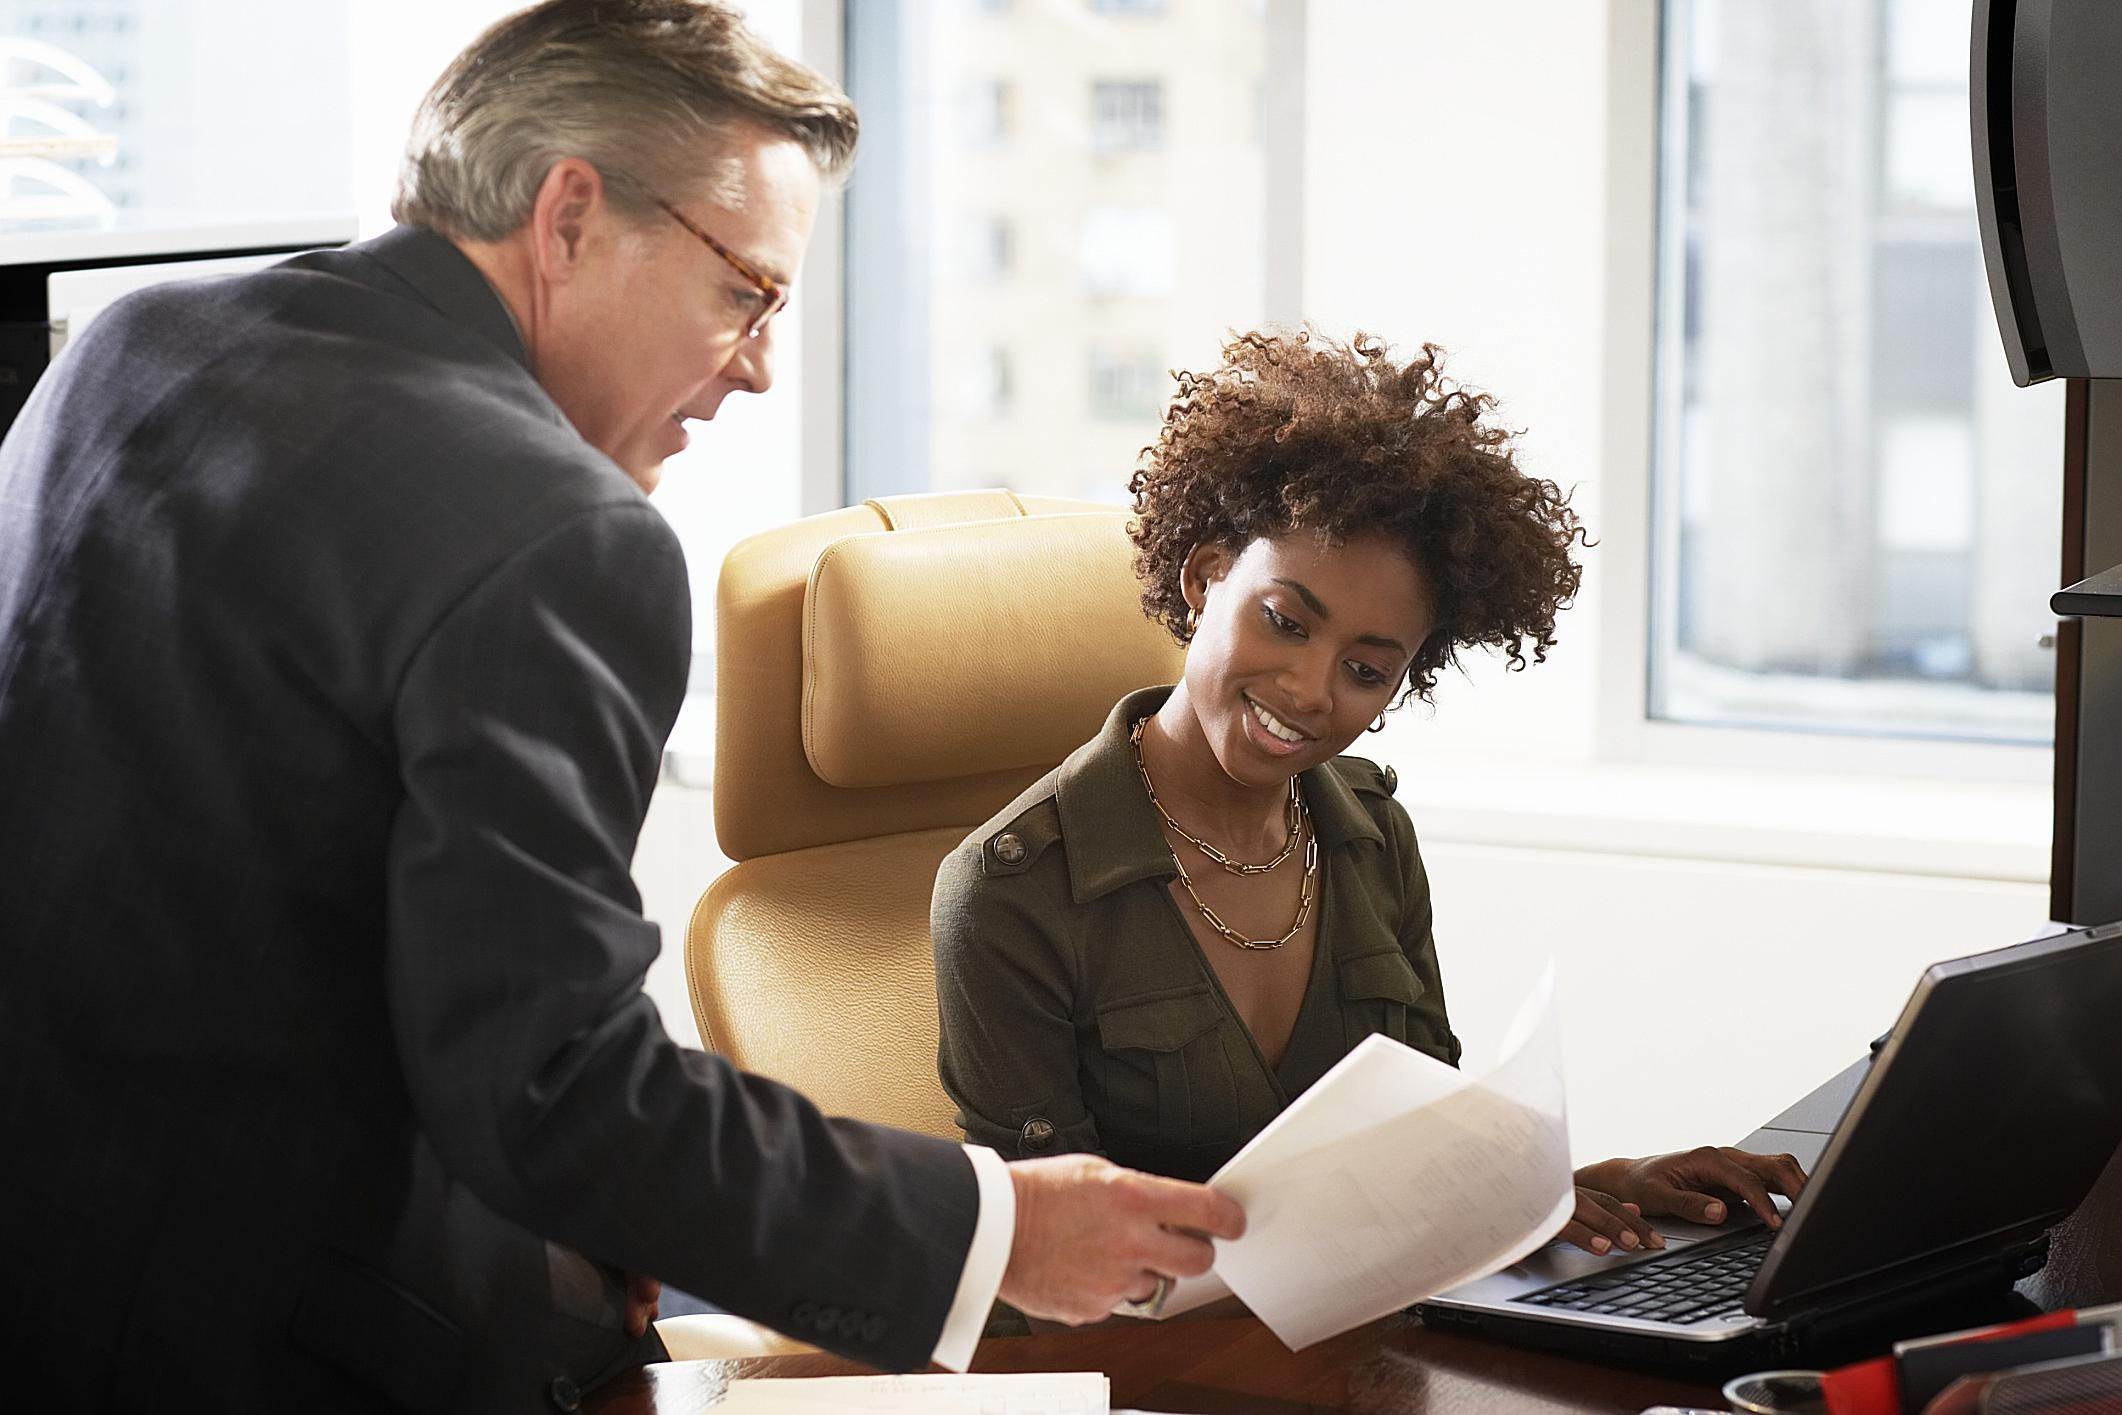 Paralegal interview questions to help you prepare